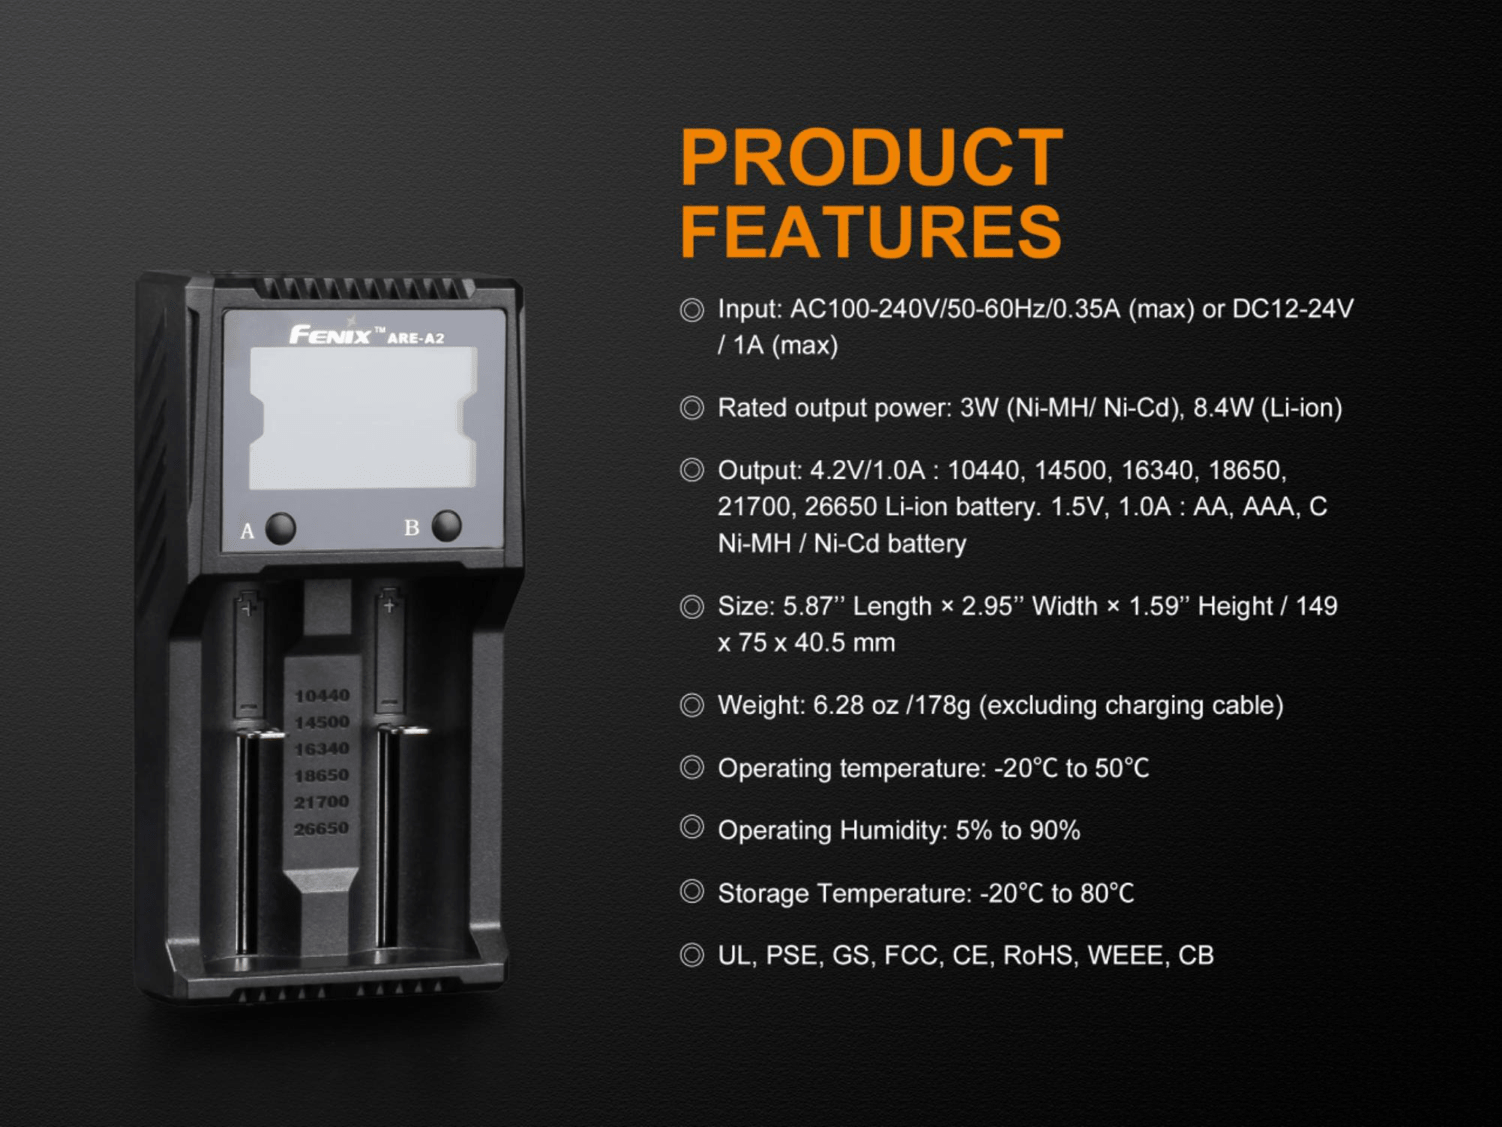 Fenix ARE A2, Two Slot Smart Charger, Rechargeable battery charger, Compatible charger to 18650, 16340, 14500 and other rechargeable AA, AAA and Lithium Ion Batteries, Charging and discharging Charger, Compact and Powerful protected Charger with LCD Screen Display